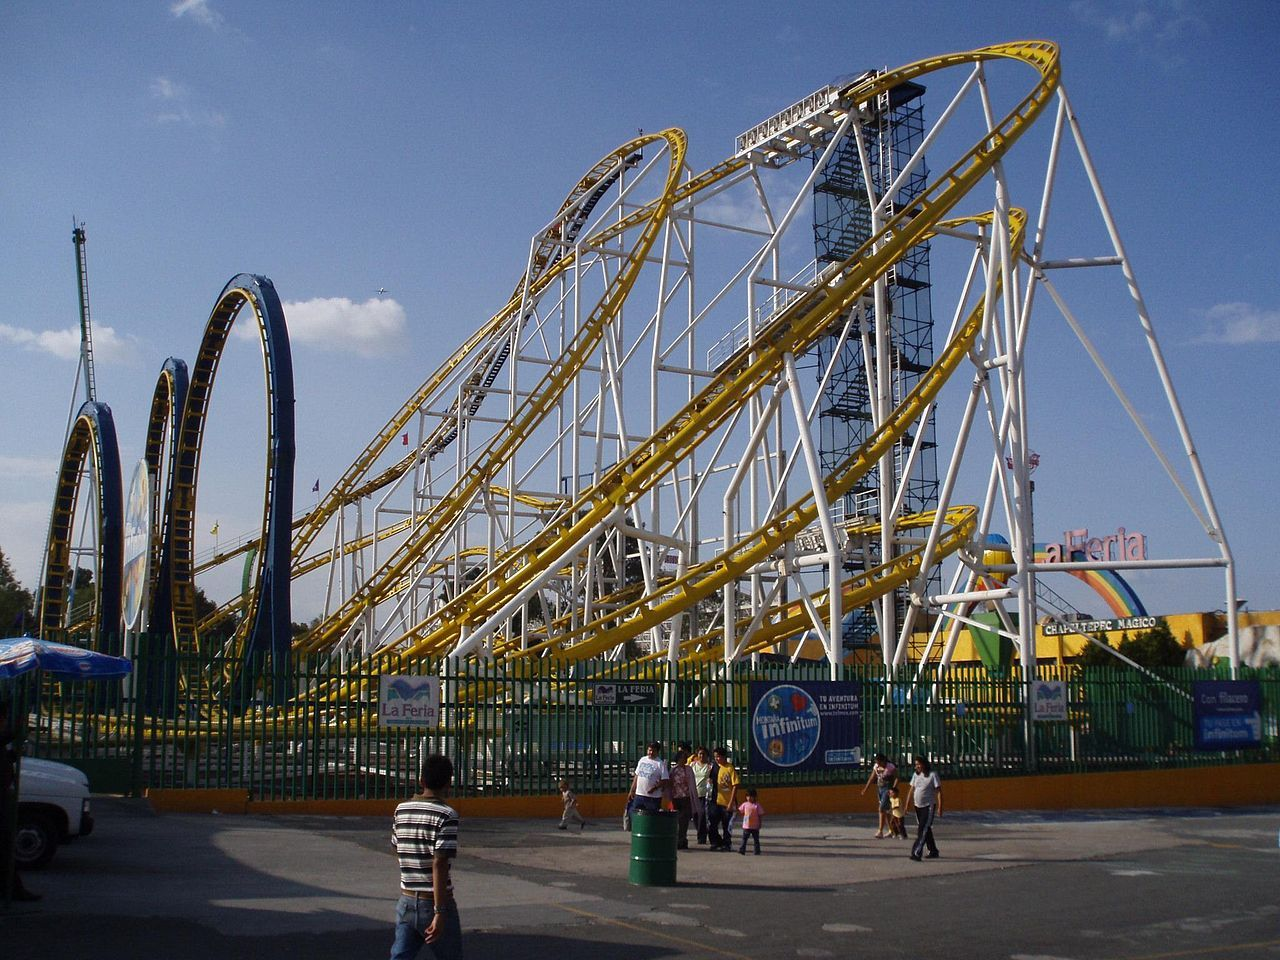 Two killed as roller coaster derails in Mexico City